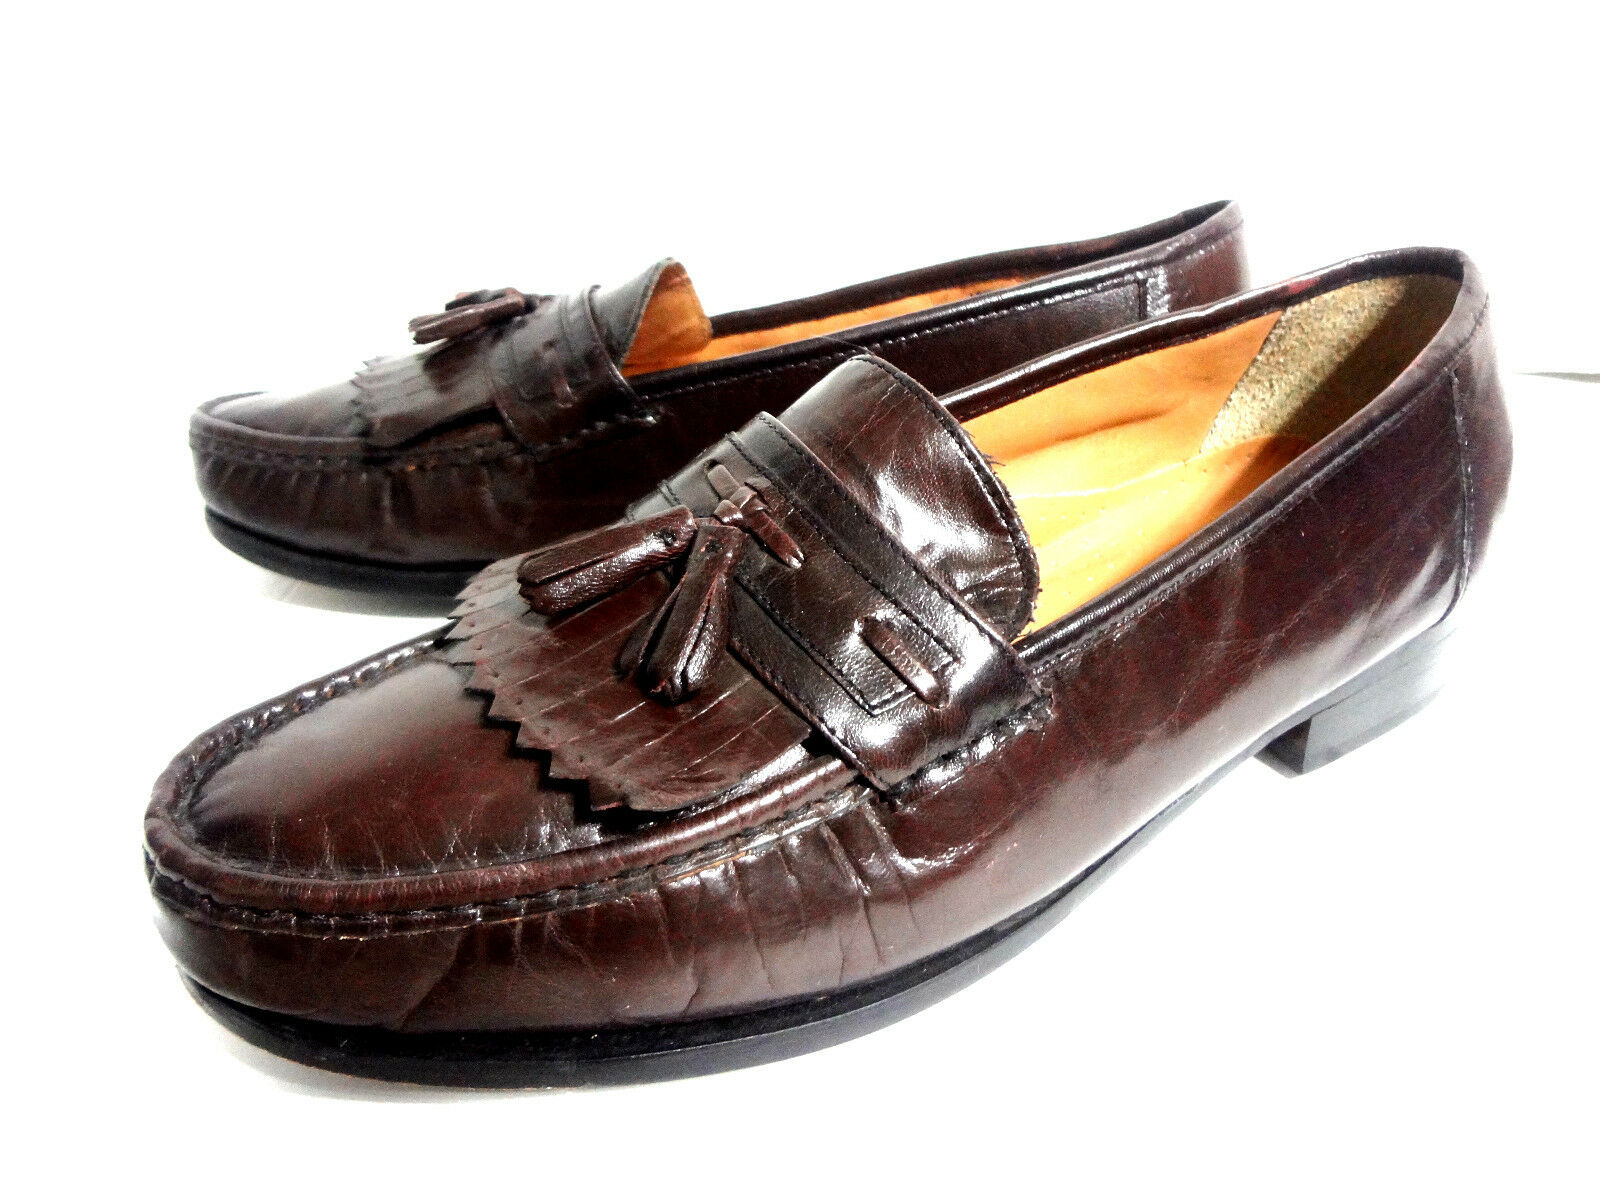 NUNN BUSH SIZE 10.5 M MENS LOAFERS TASSEL BROWN LEATHER SHOES